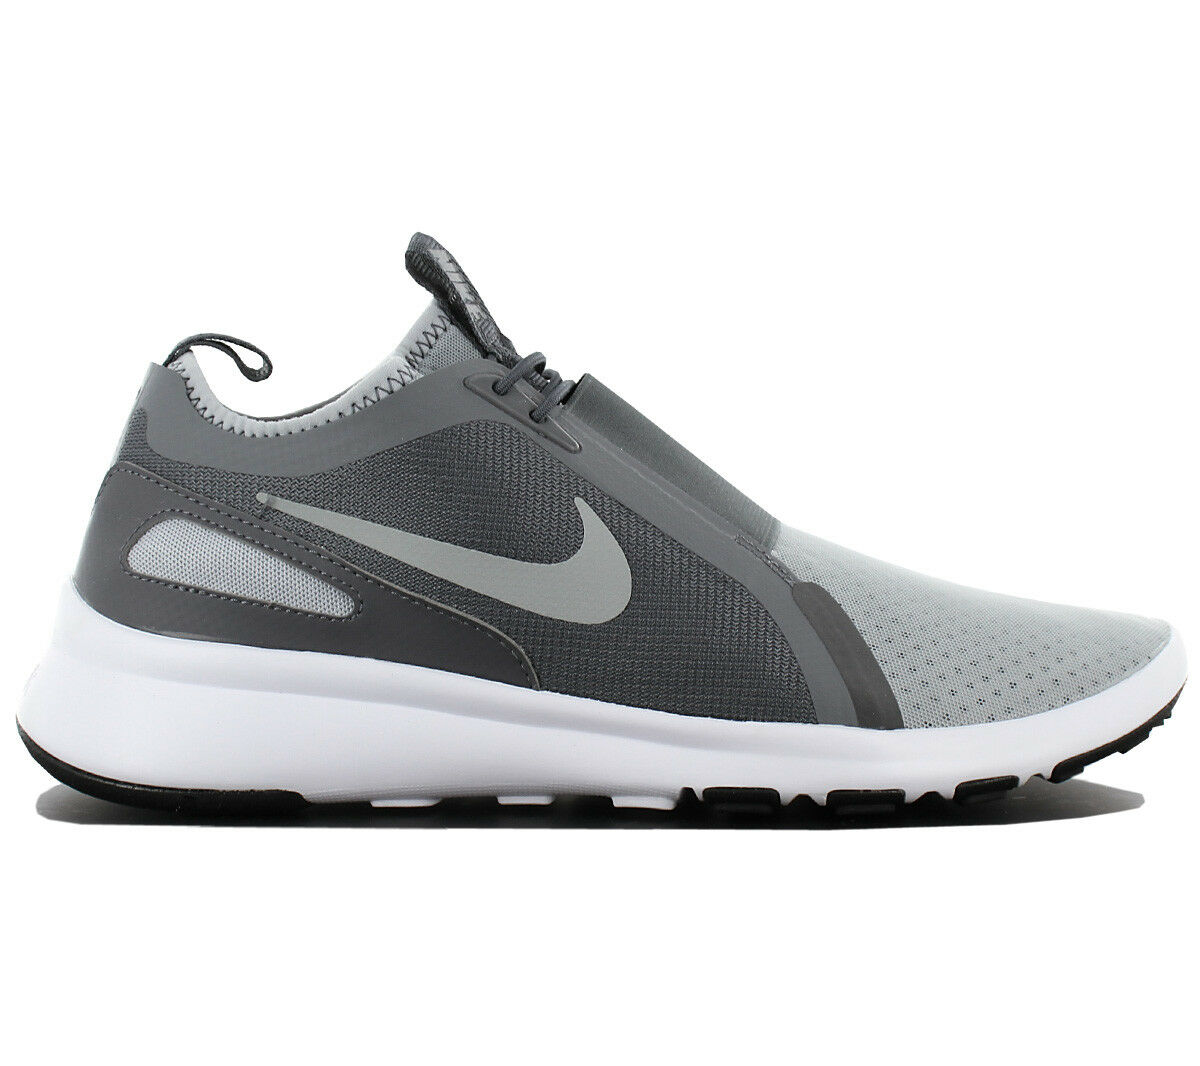 Nike Current Slip on Men's Sneakers shoes Casual Trainers Free 874160-001